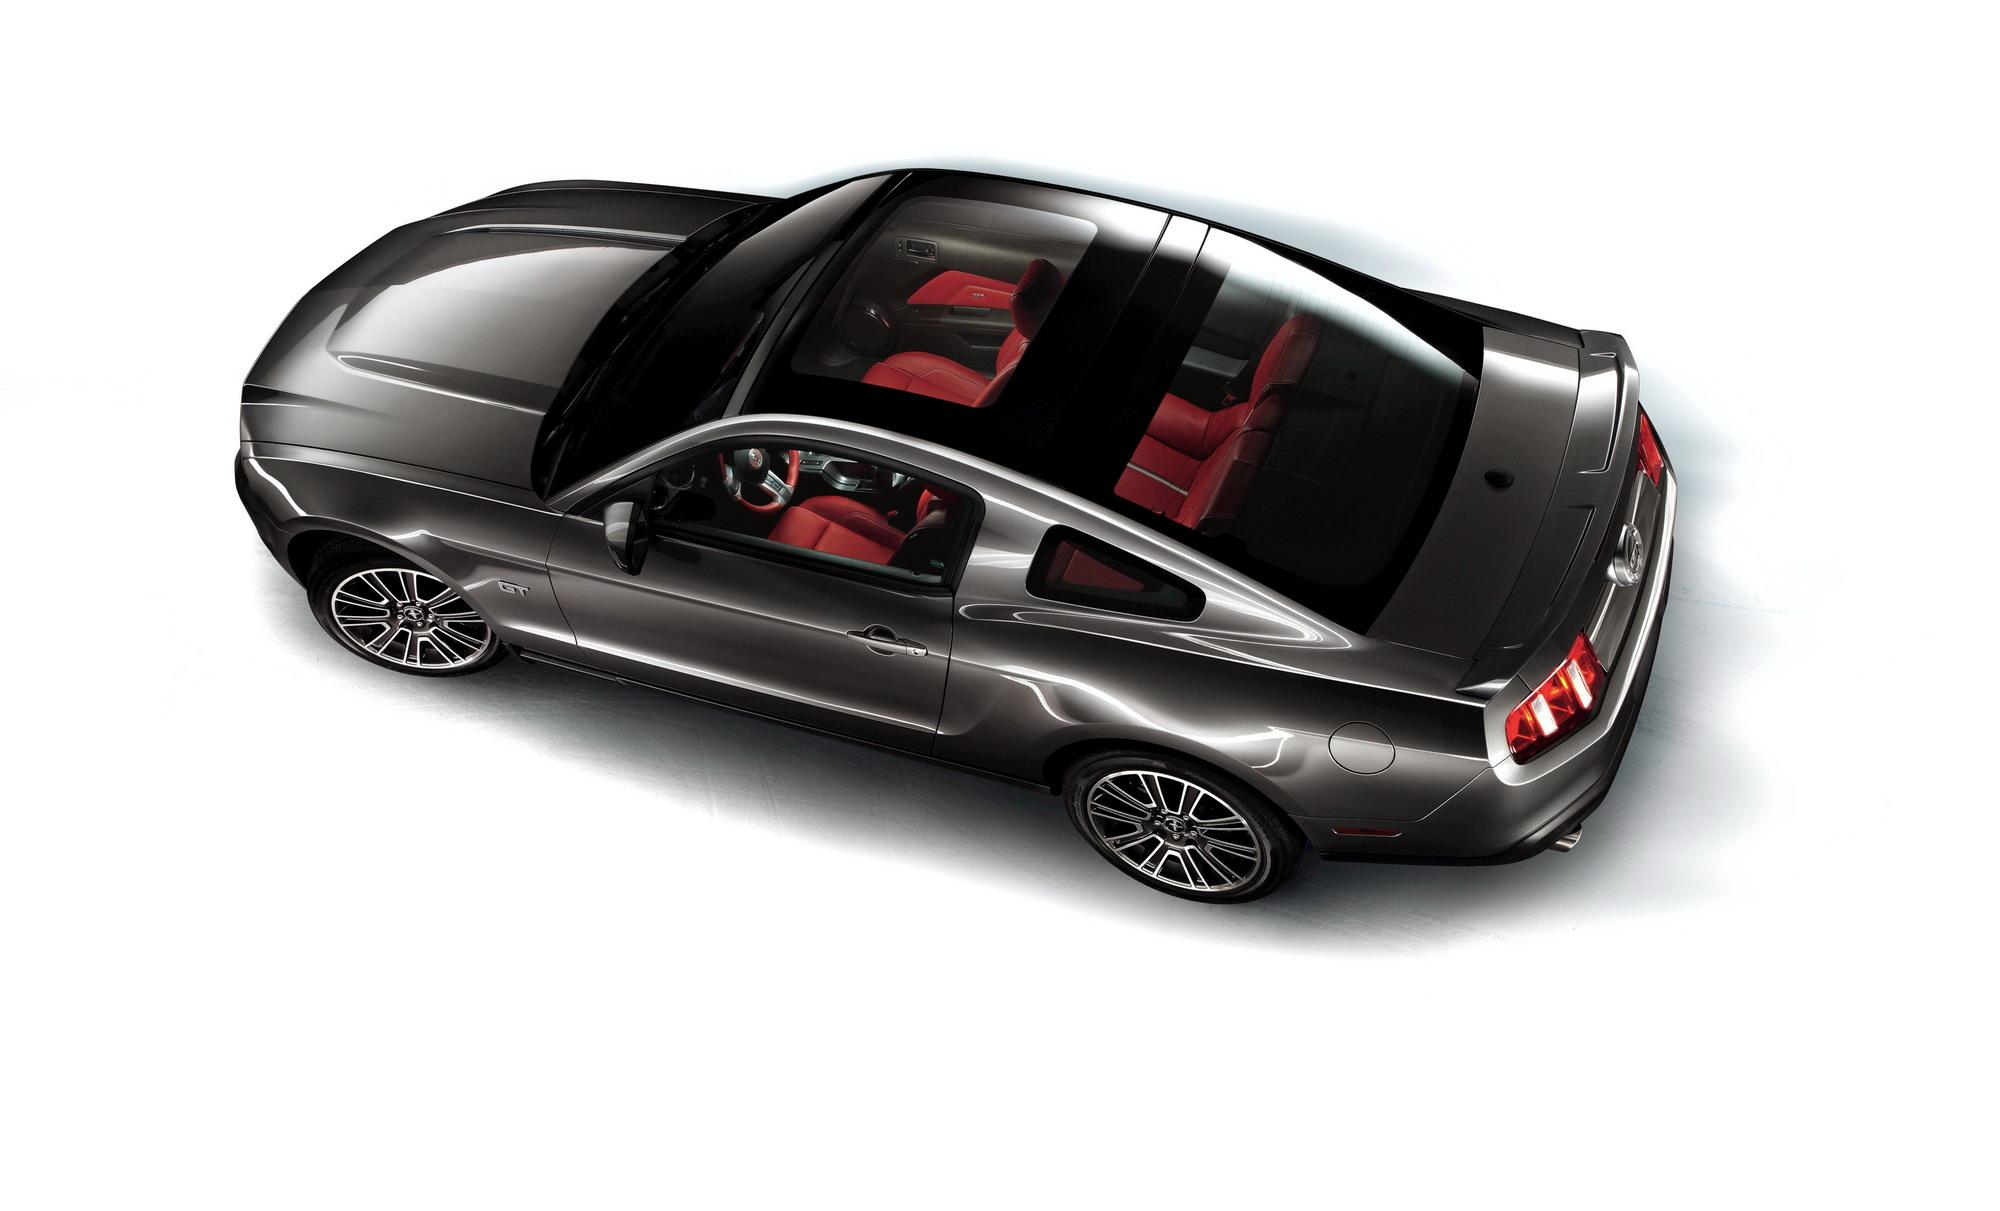 2010 ford glass roof mustang review top speed. Black Bedroom Furniture Sets. Home Design Ideas